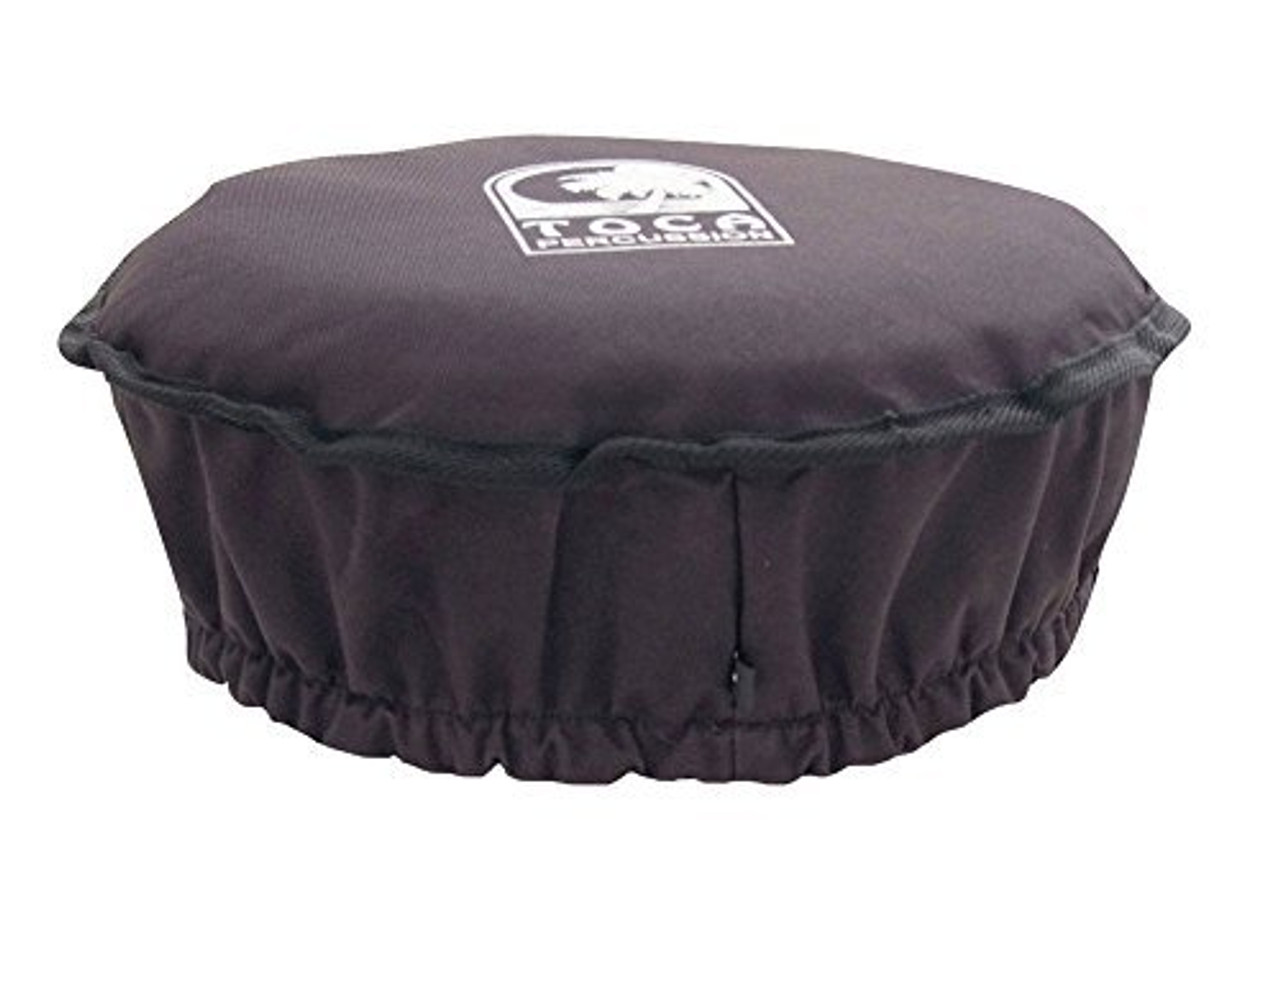 """Toca a TDHAT-10 Djembe 10"""" Black padded Hat for Djembe (Djembe not included)"""